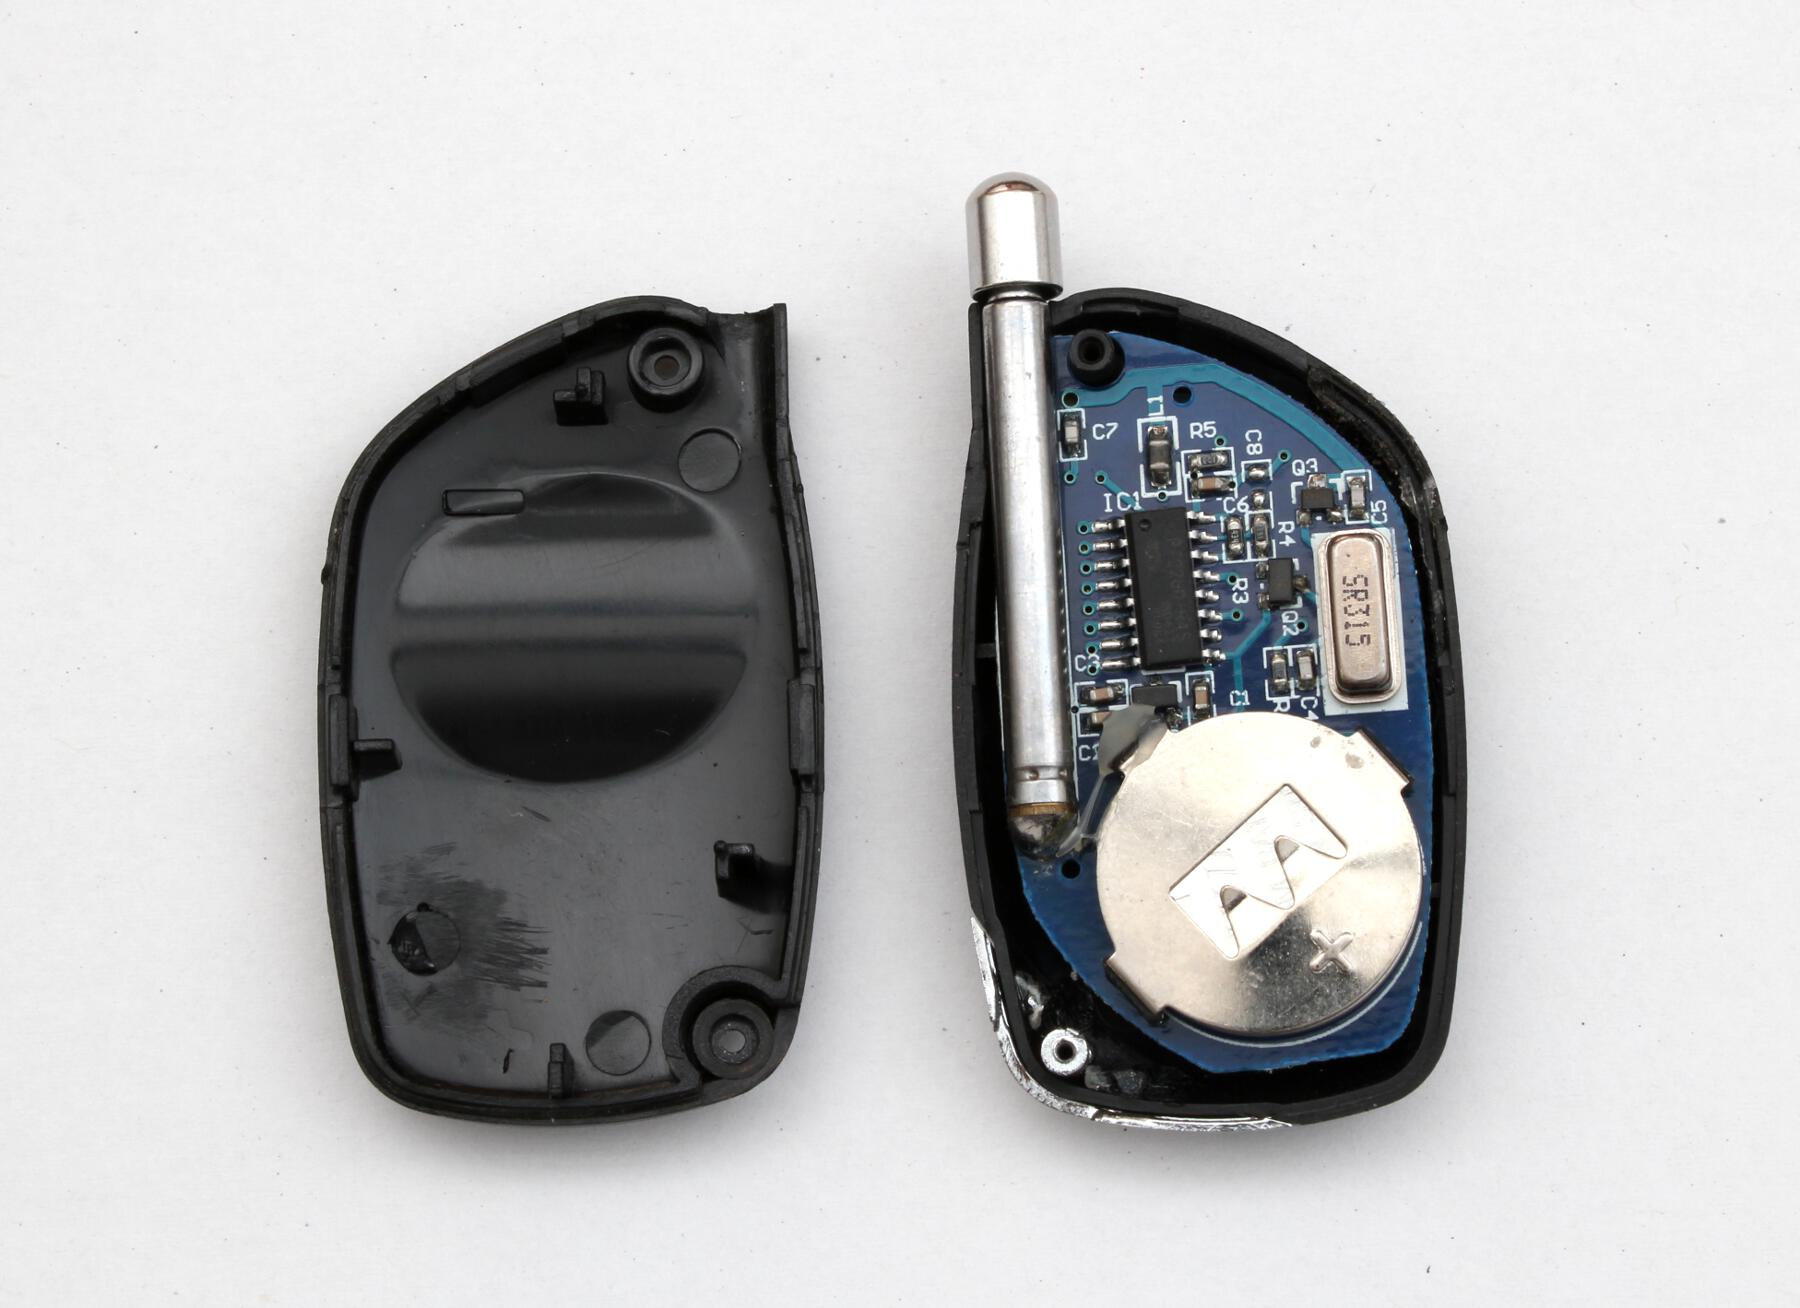 Why You Dont Want To Buy A Cheap Alarm Motorcycle Teardown How Build 555 Timer Based In